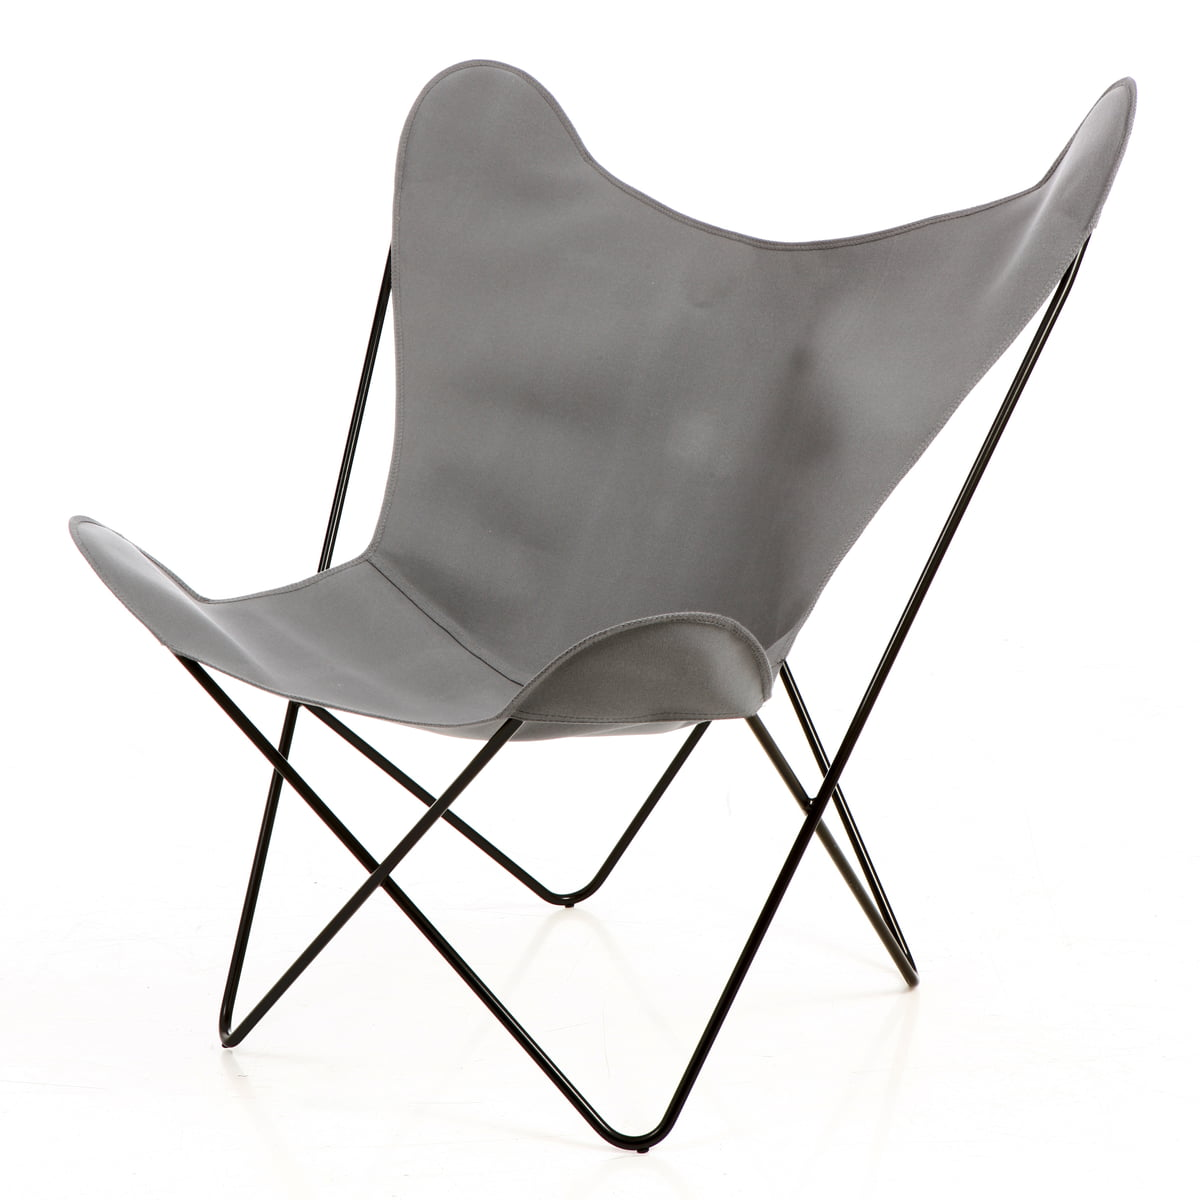 Butterfly chair black - M Butterfly B K F Chair Black Steel Acrylic Grey